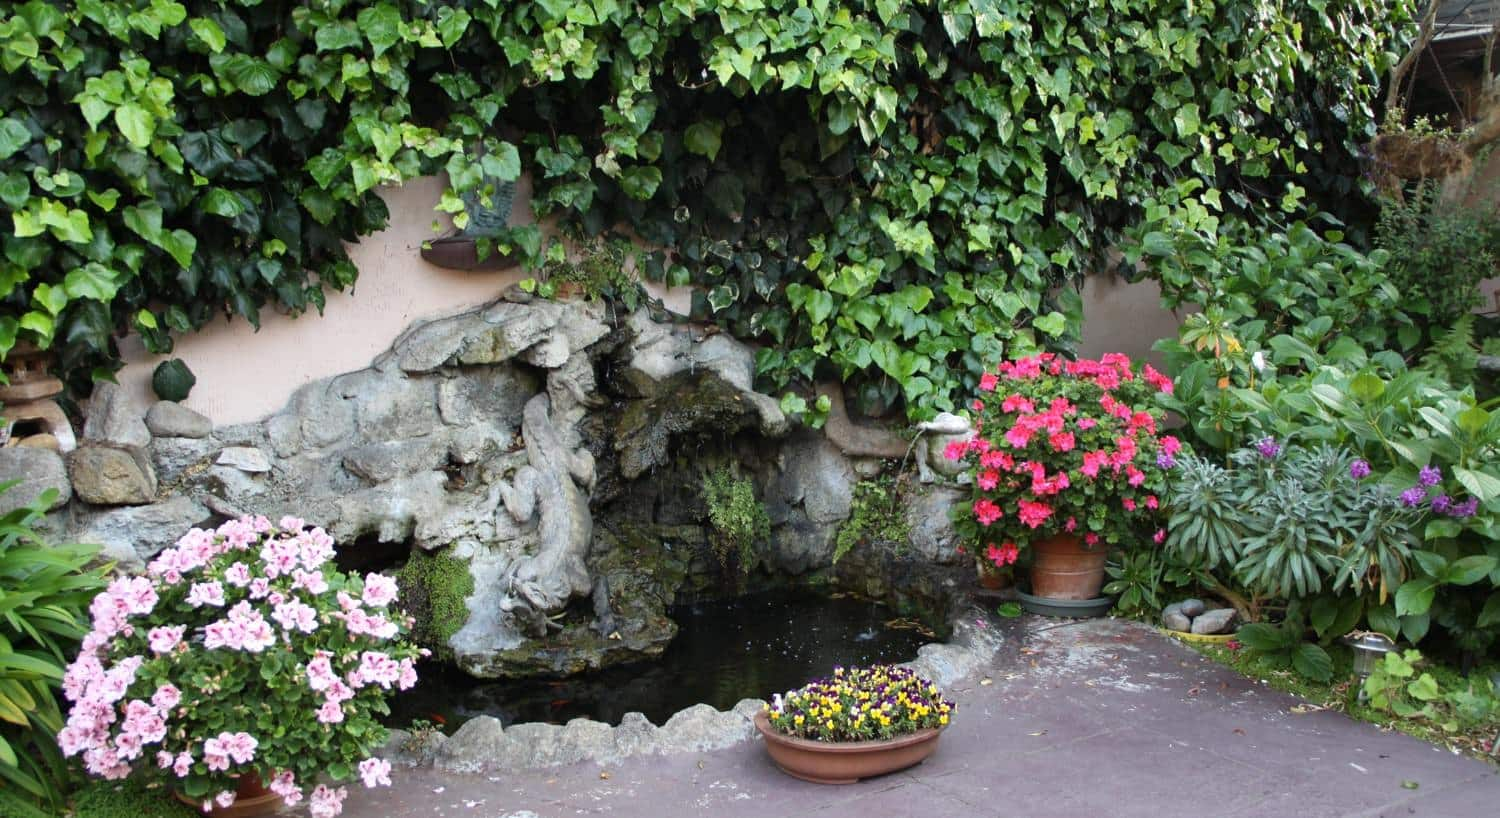 Flowering plants and green vines  around a water feature